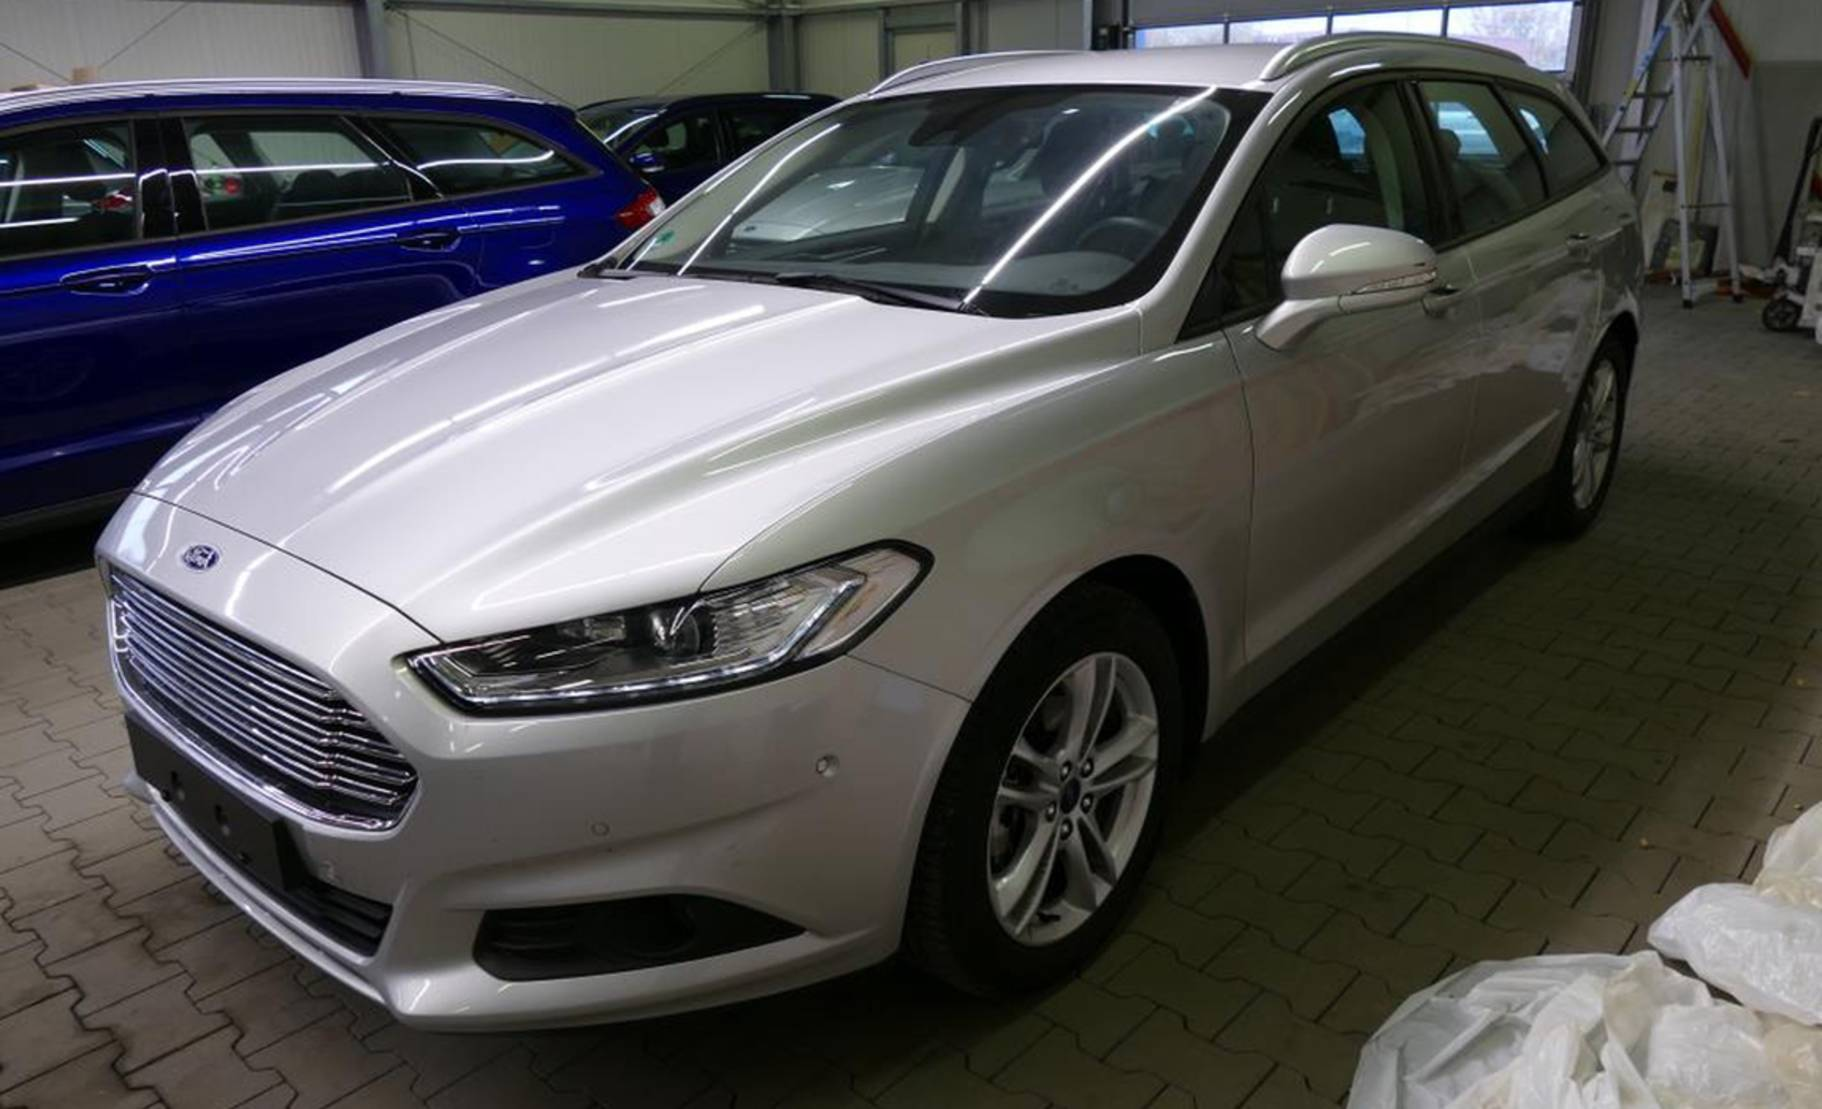 Ford Mondeo Turnier 2.0 TDCi Start-Stop Business Edition (716618) detail1